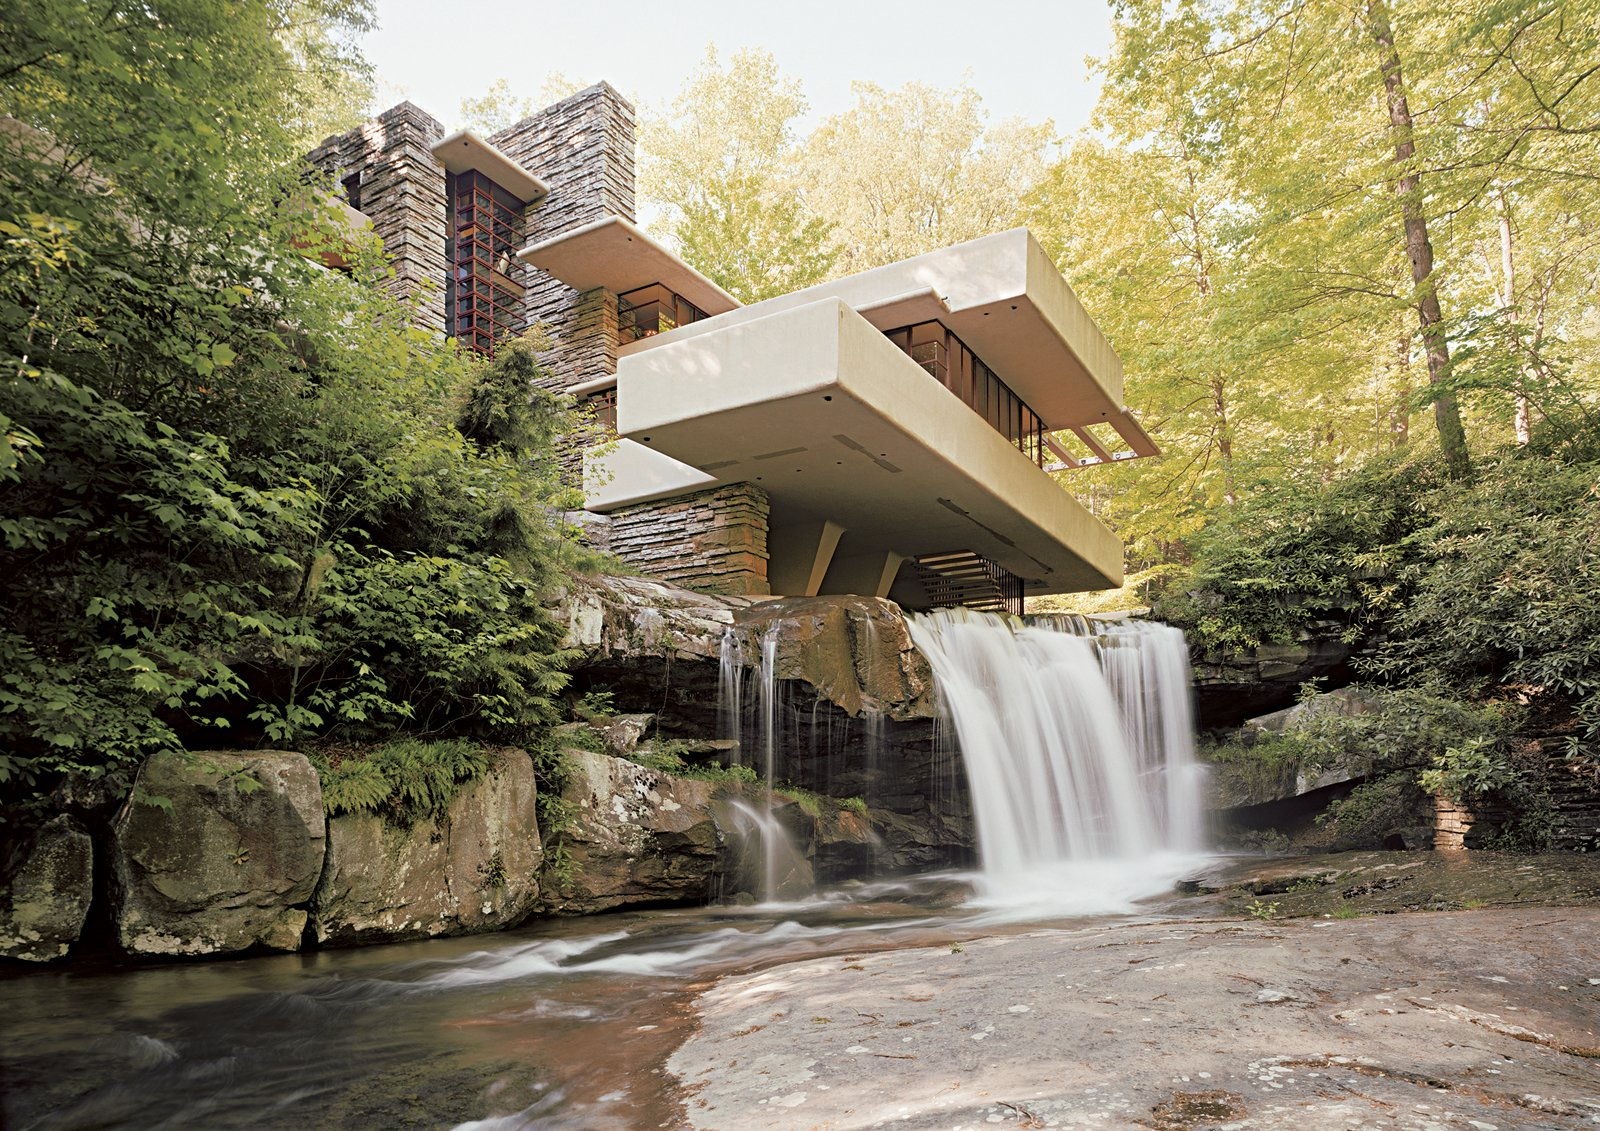 The Babe Ruth of American residential design, Fallingwater by Frank Lloyd Wright continues to dazzle with its shifting planes hovering over the creek. Photo by Victoria Sambunaris  Best Midcentury Homes in America by Aaron Britt